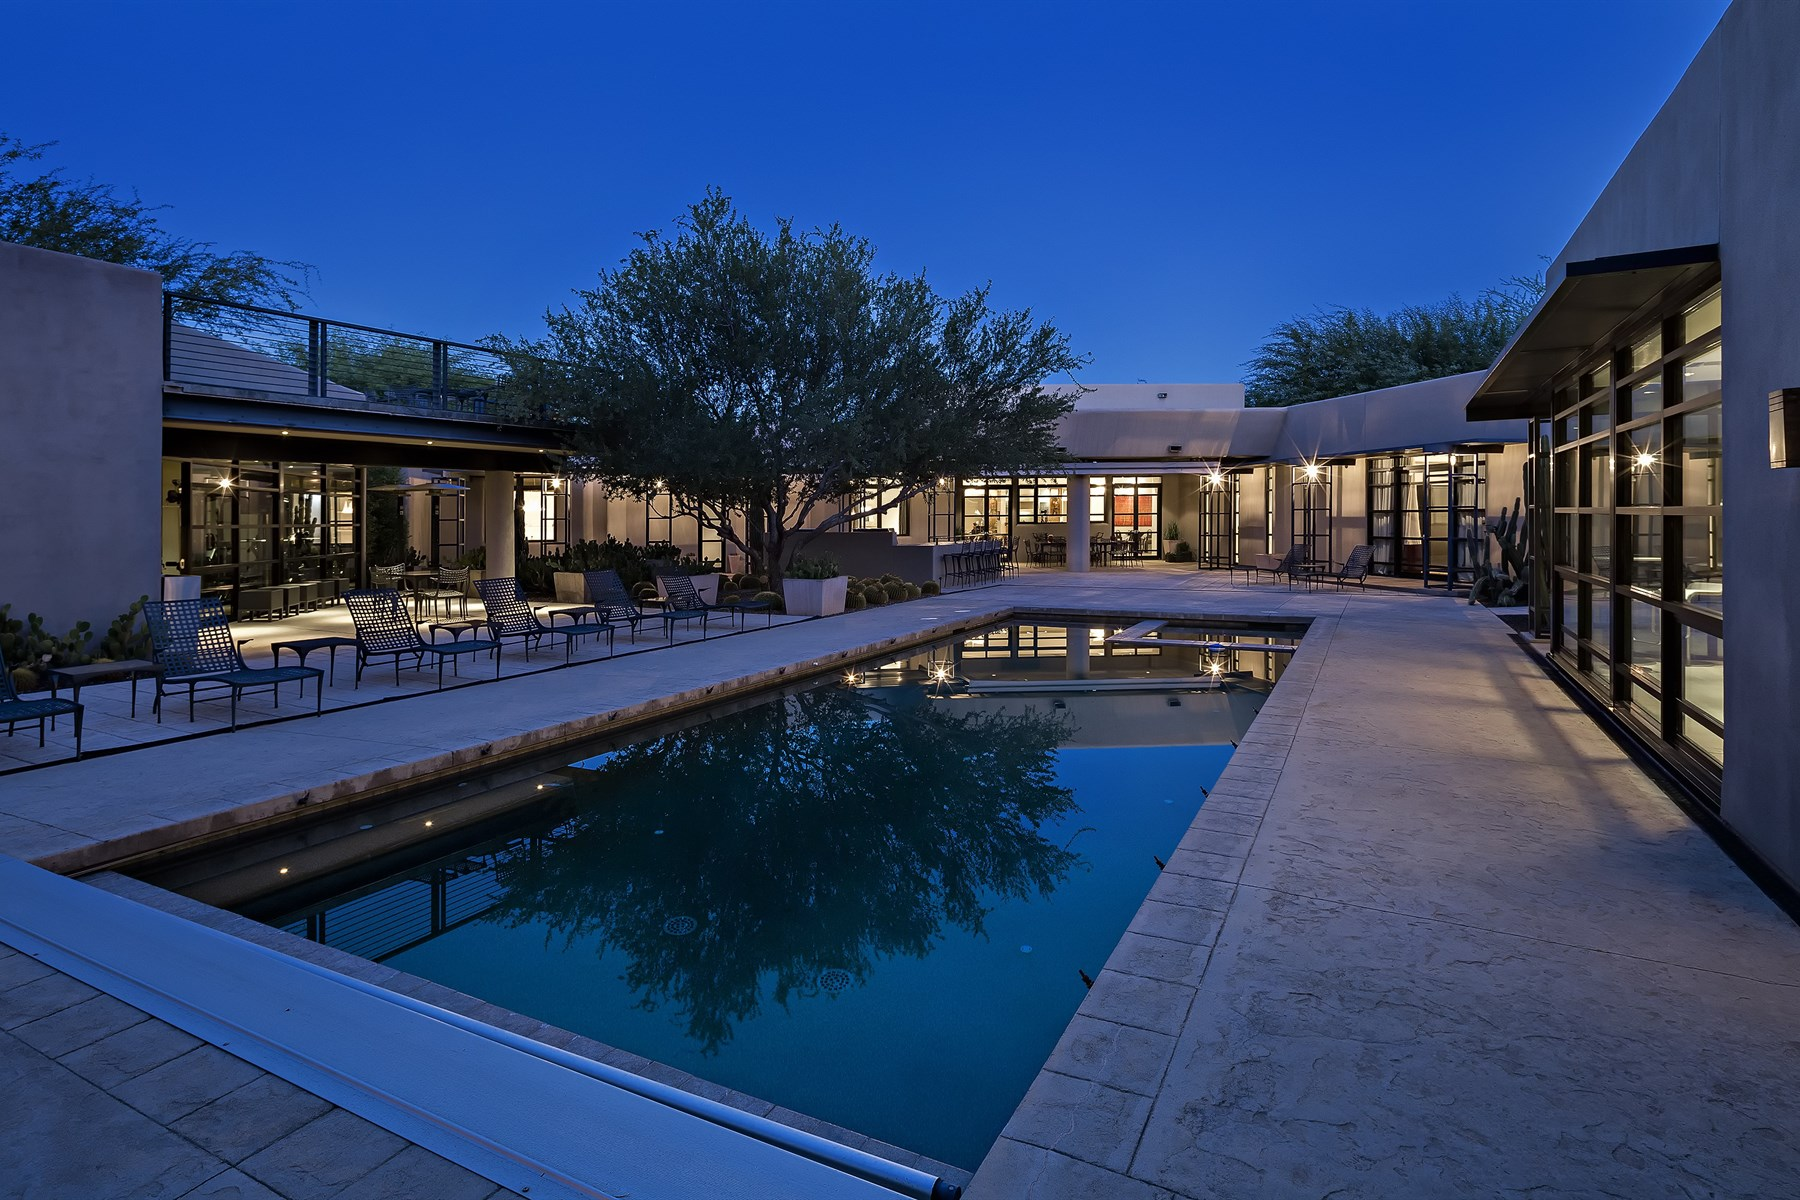 Moradia para Venda às sophisticated cosmopolitan residence of modern architecture in La Vista 7824 N 65TH ST Paradise Valley, Arizona, 85253 Estados Unidos